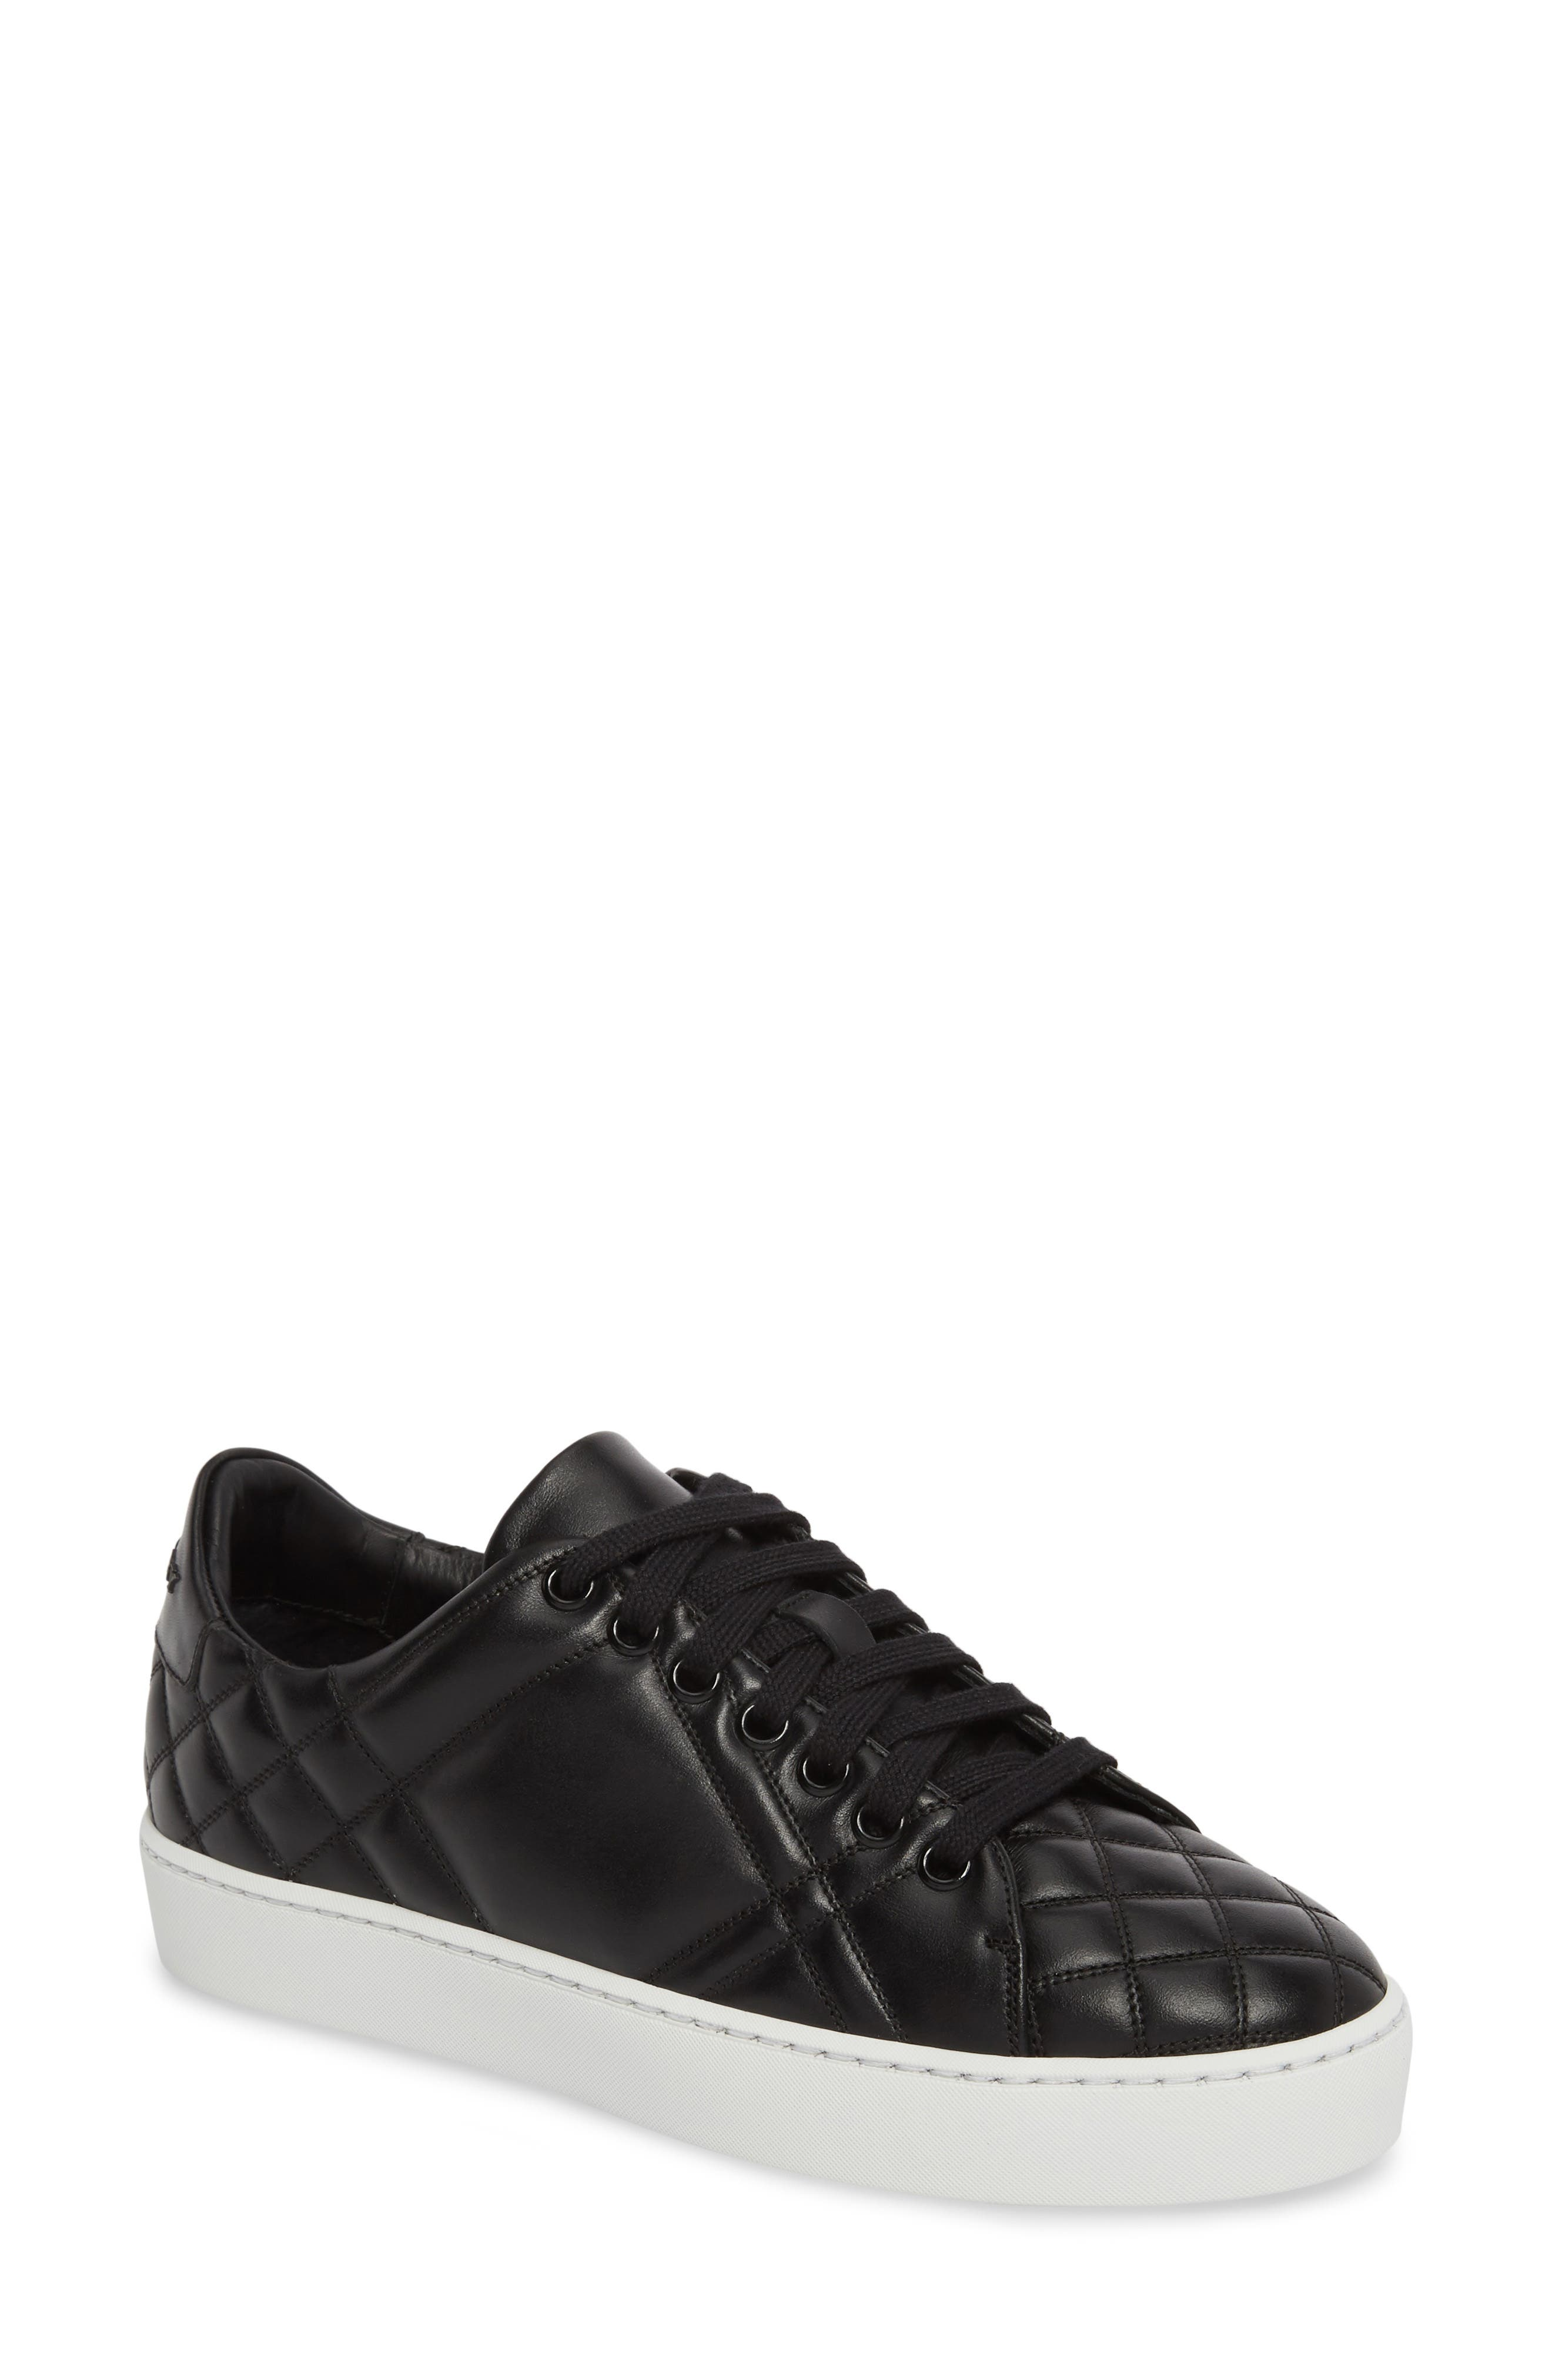 Check Quilted Leather Sneaker,                             Main thumbnail 1, color,                             Black Leather